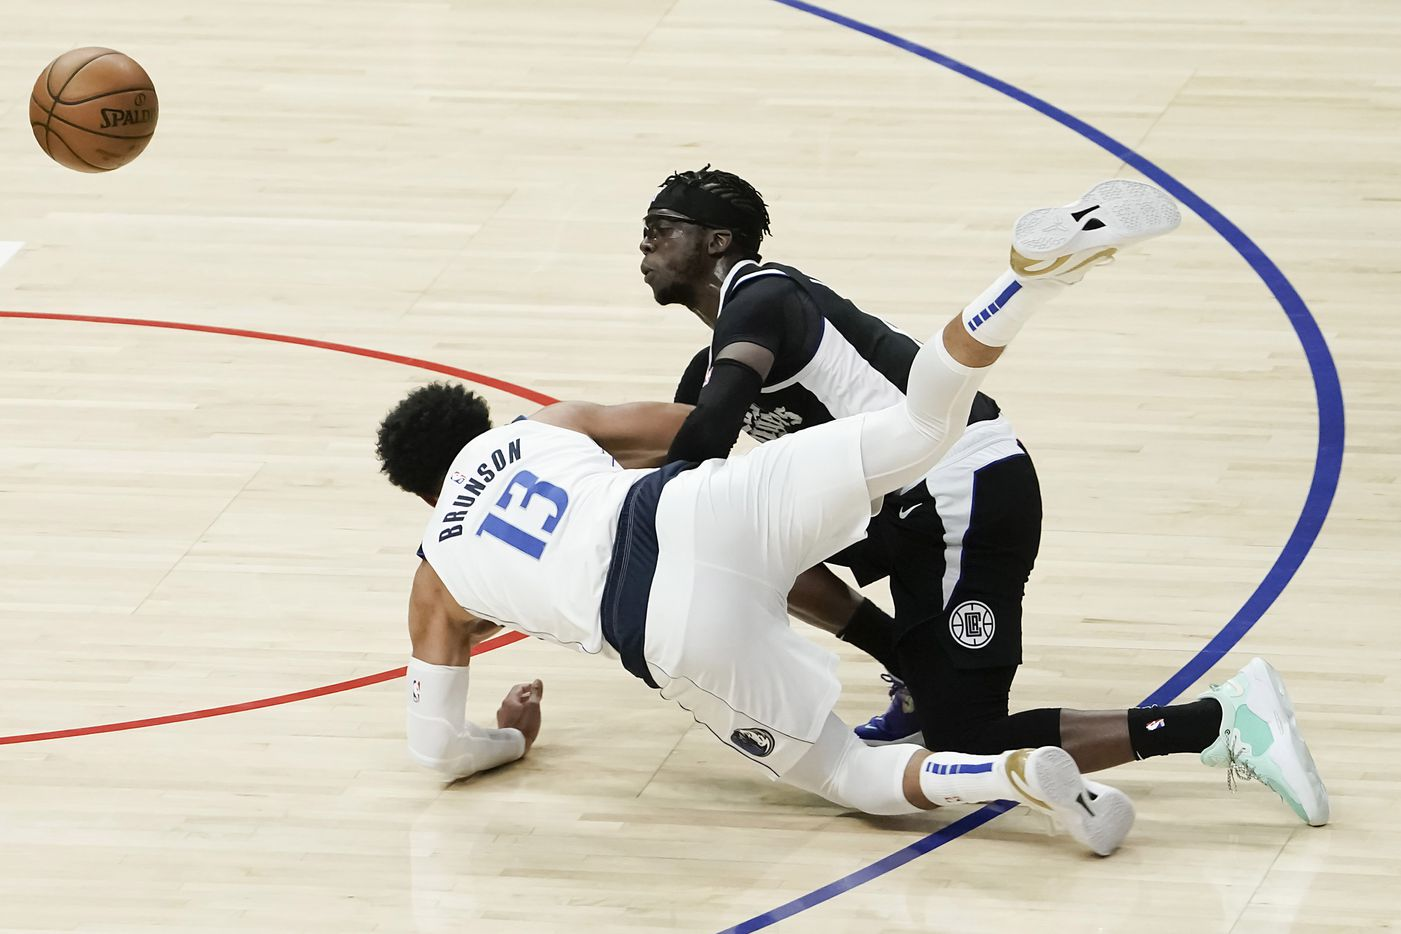 Dallas Mavericks guard Jalen Brunson (13) collides with LA Clippers guard Reggie Jackson (1) chasing a loose ball during the second half of an NBA playoff basketball game at Staples Center on Saturday, May 22, 2021, in Los Angeles.